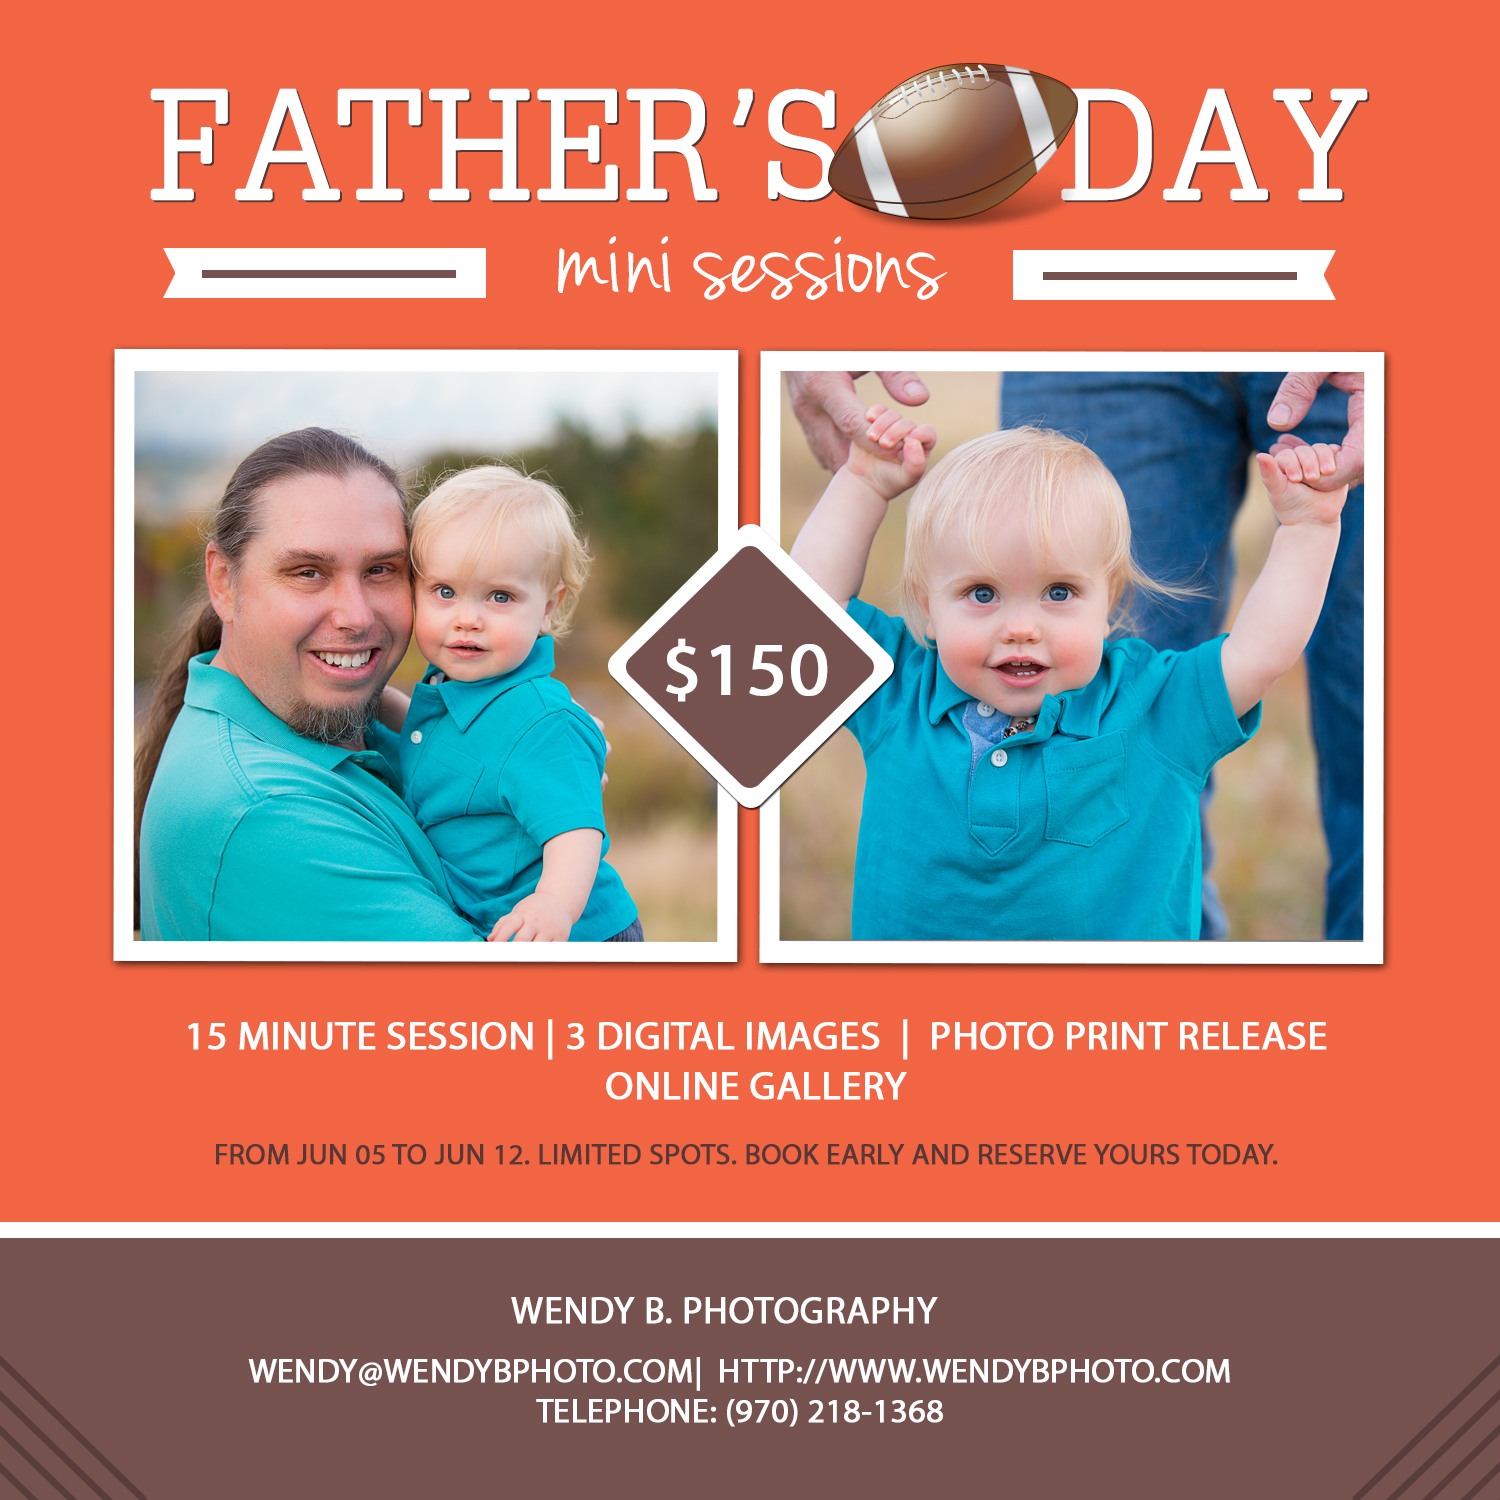 fathers day mini photo sessions